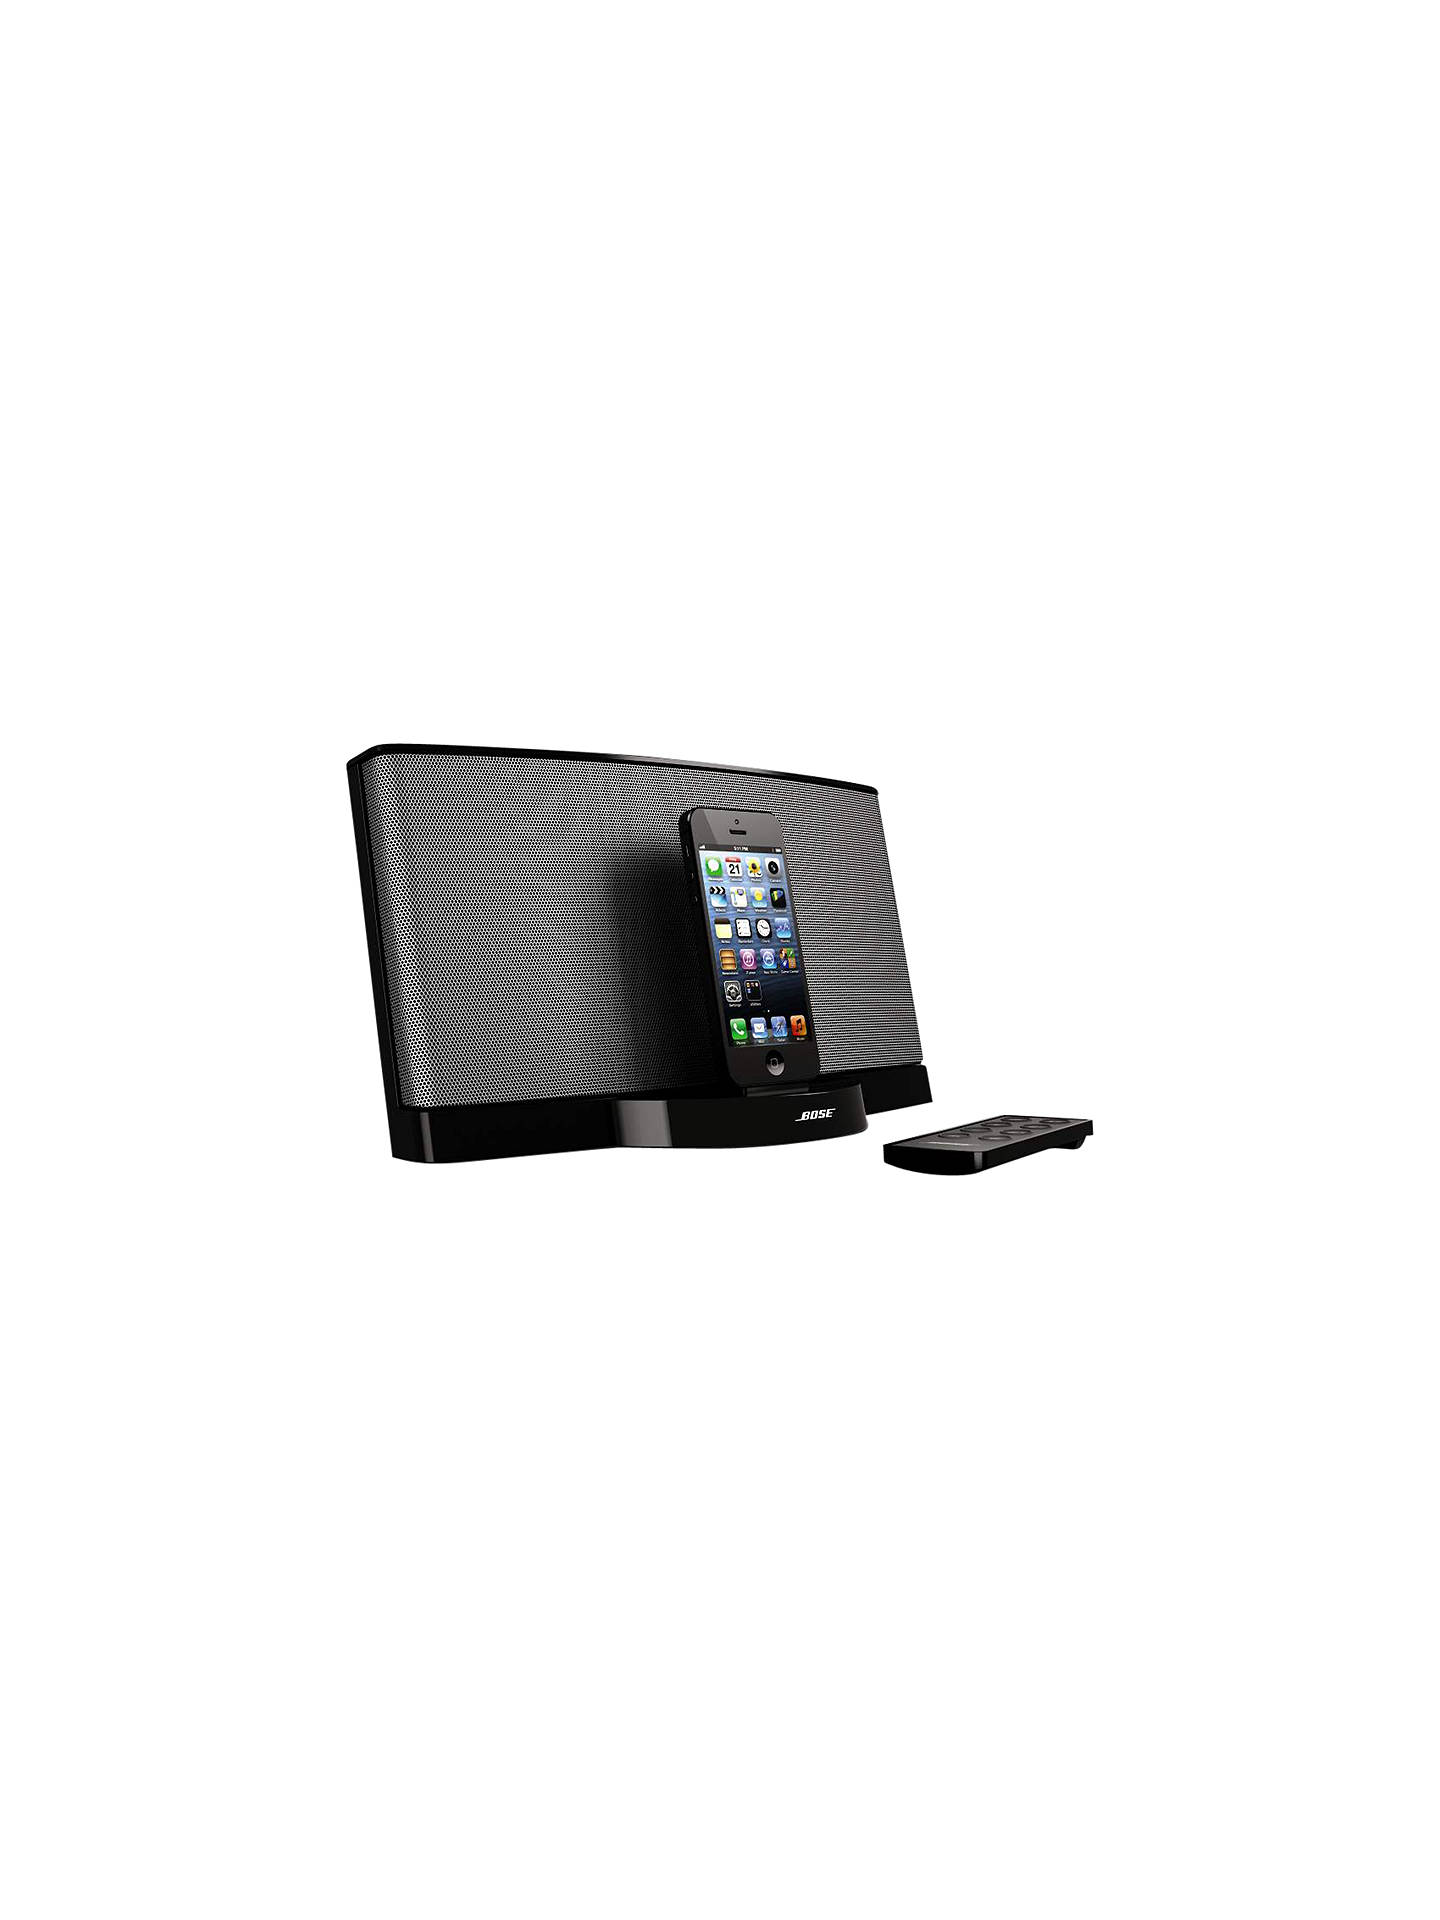 Bose® SoundDock® Series III digital music system with Apple